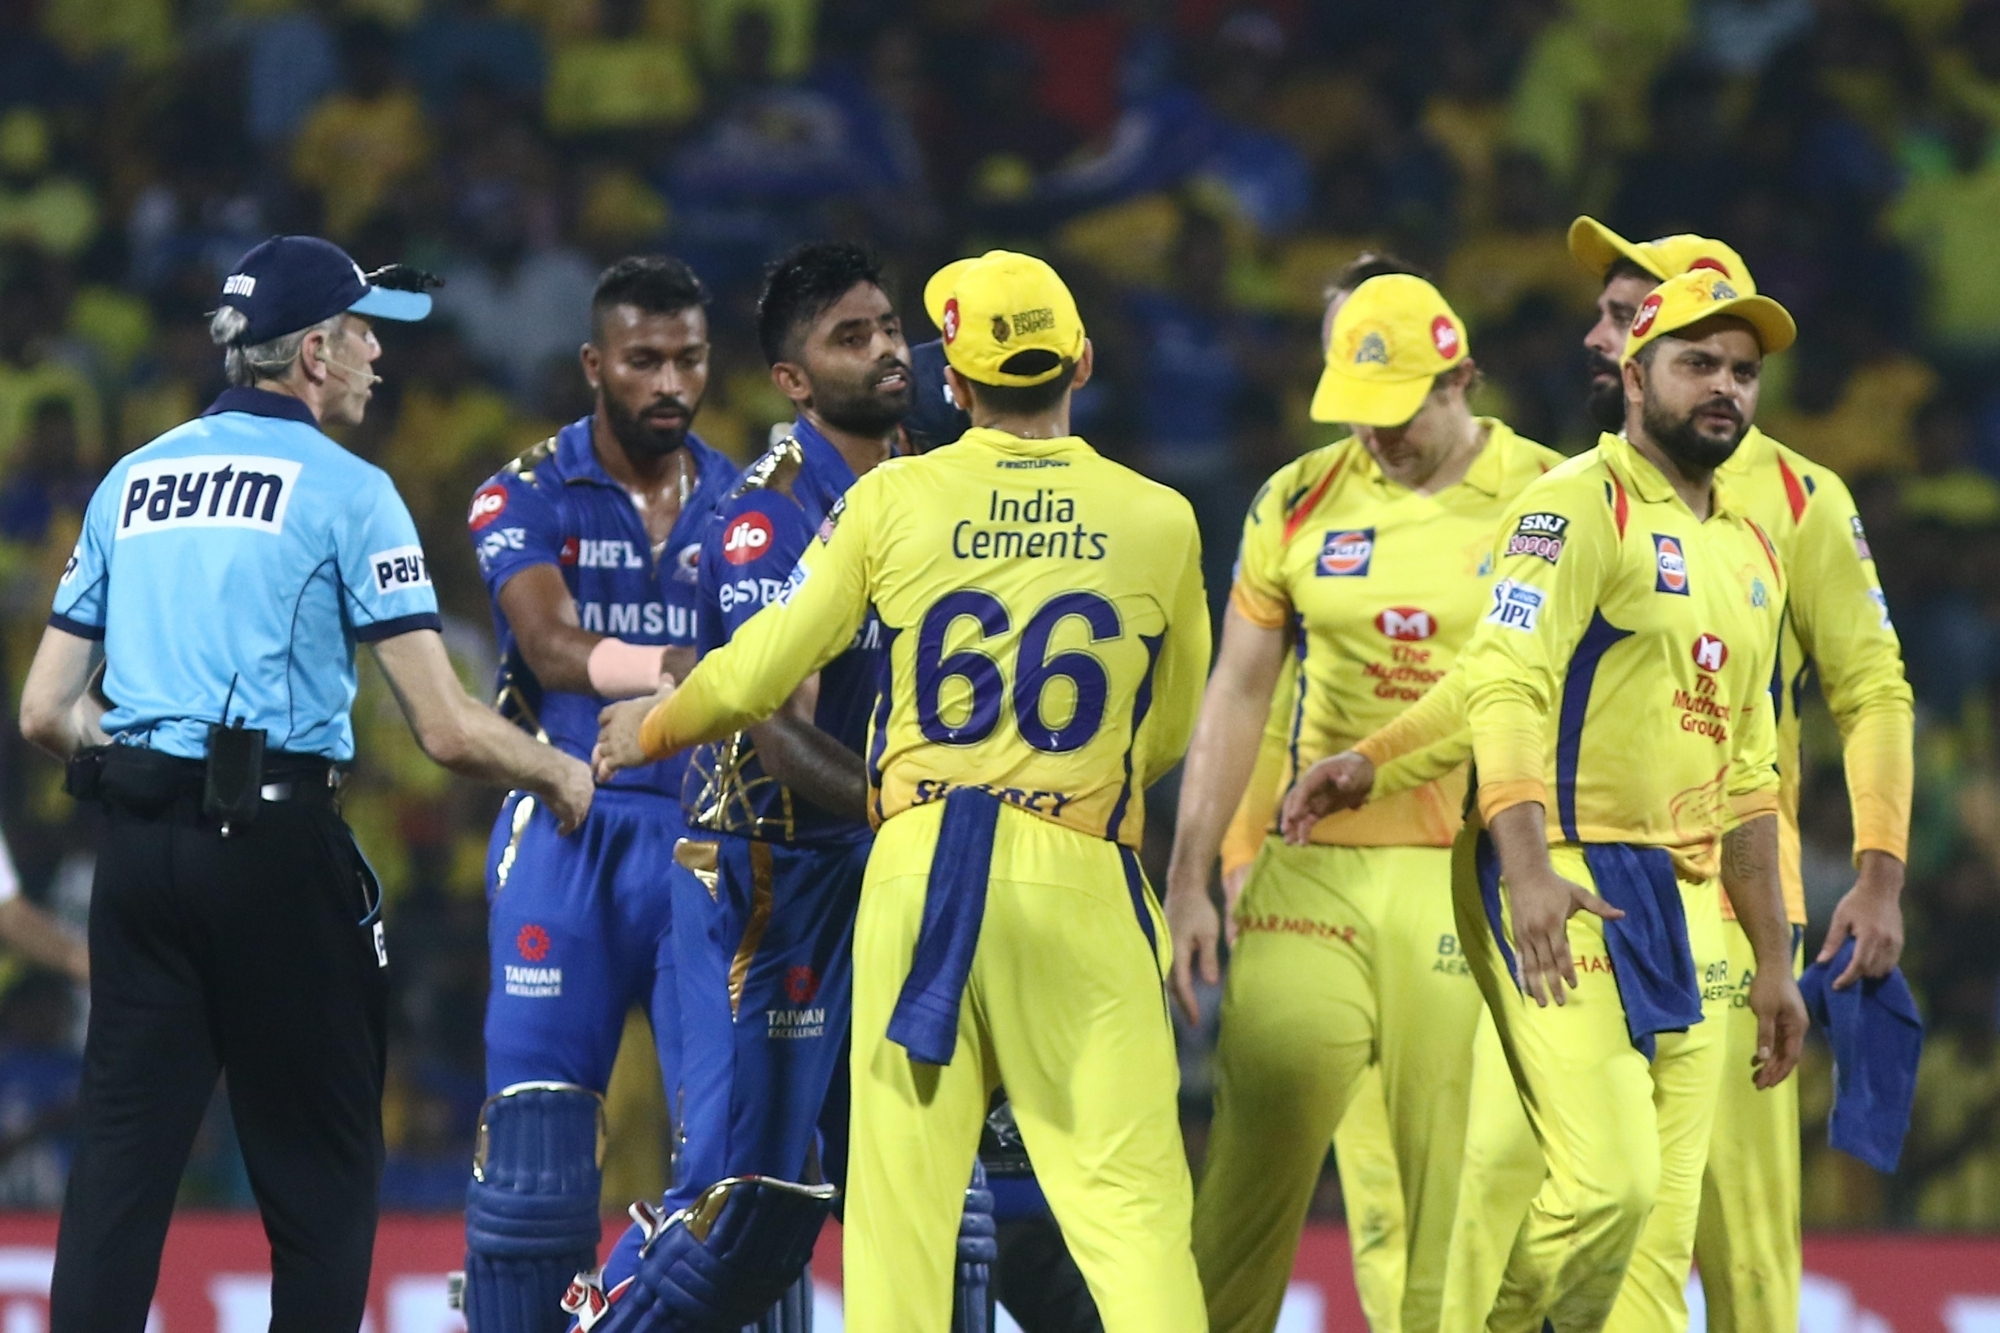 IPL 2020 is all set to take place in UAE in September-November | IANS